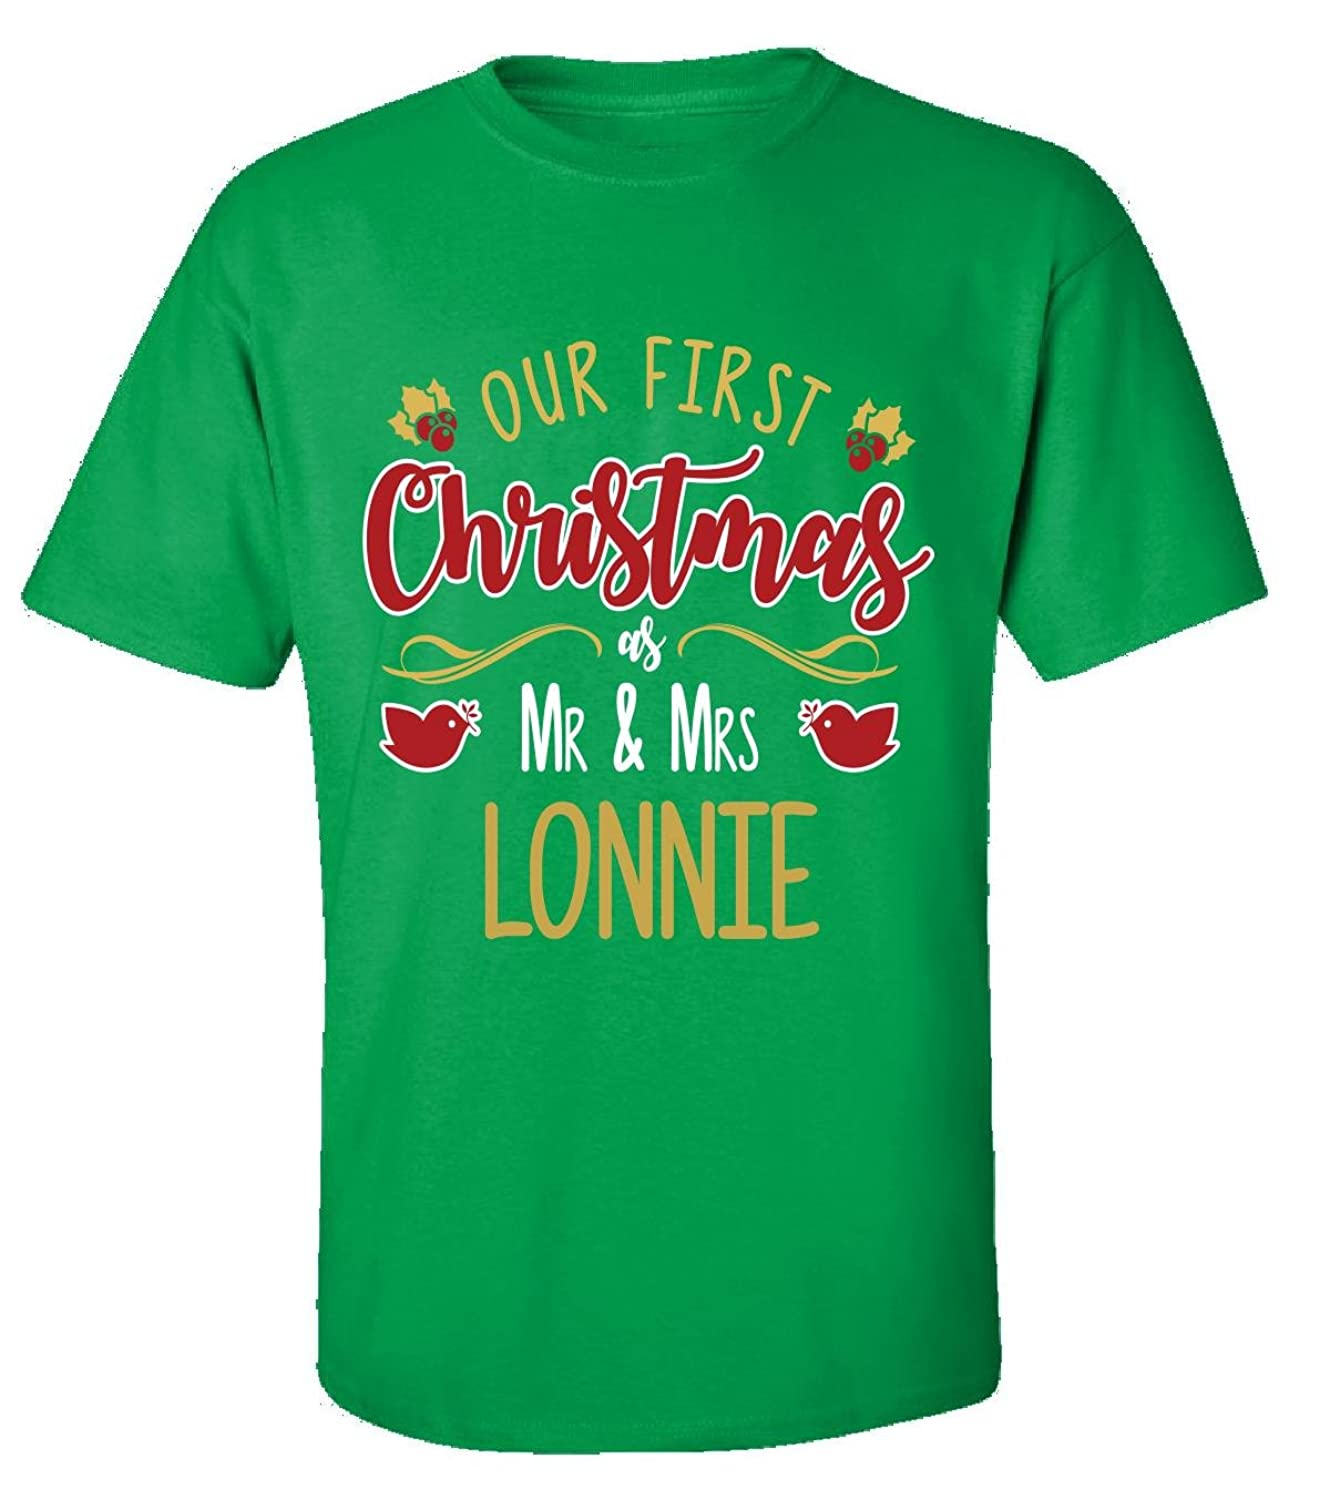 Our First Christmas As Mr - Mrs Lonnie - Adult Shirt